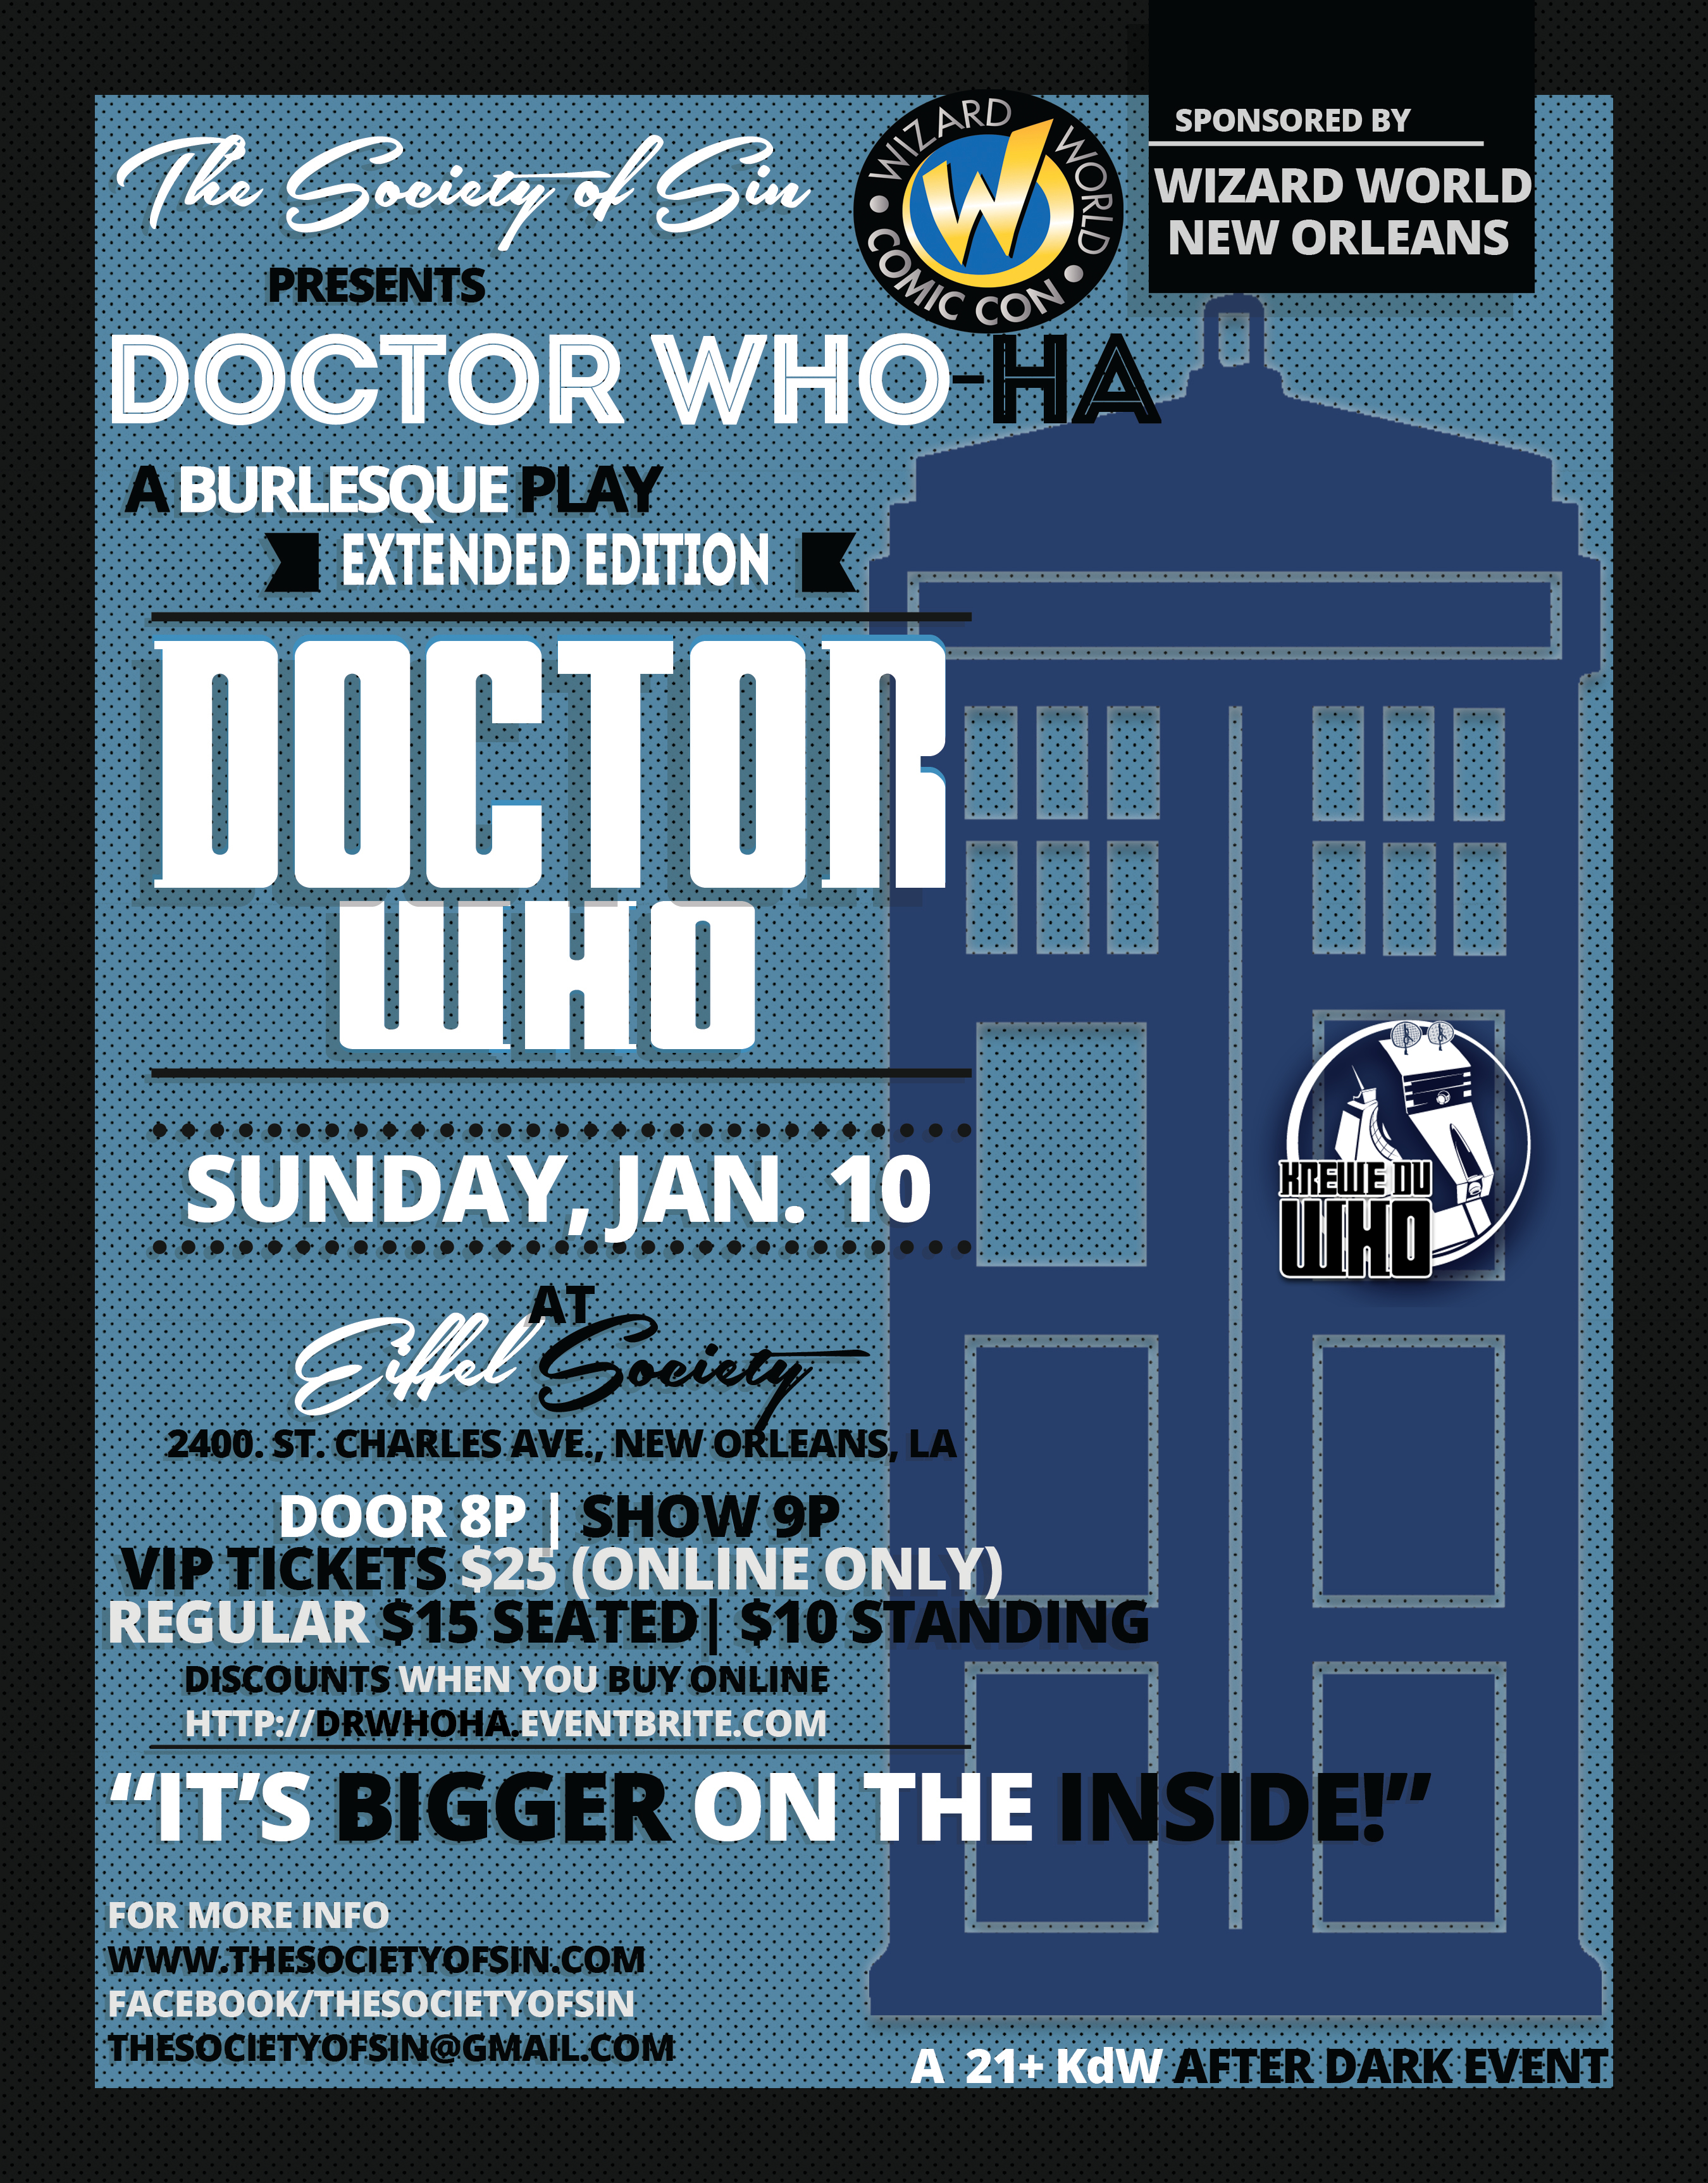 Doctor Who-Ha: A Burlesque Play